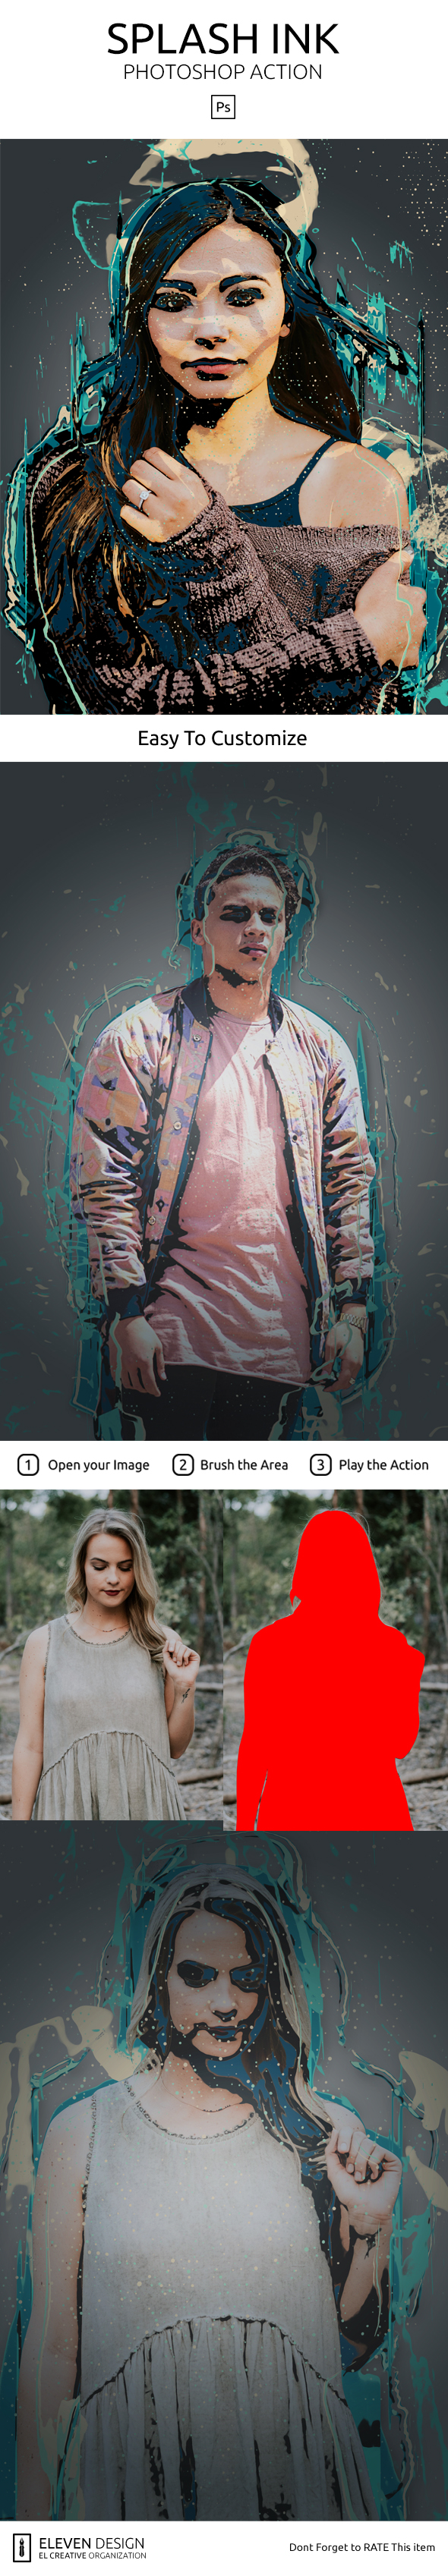 GraphicRiver Splash Ink Photoshop Action 21018022